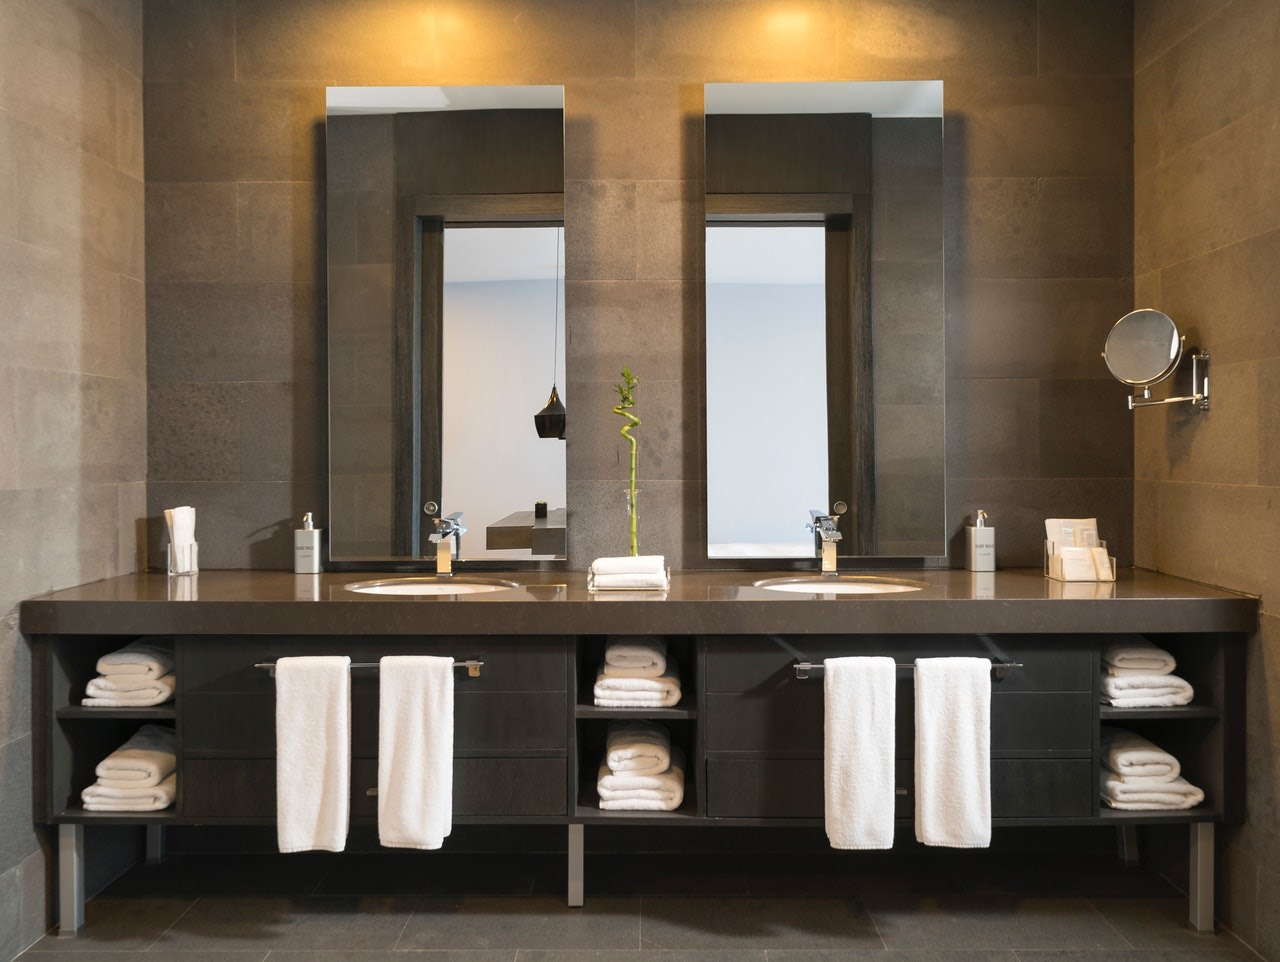 2019 Bathroom Trends that are Worth Your Investment